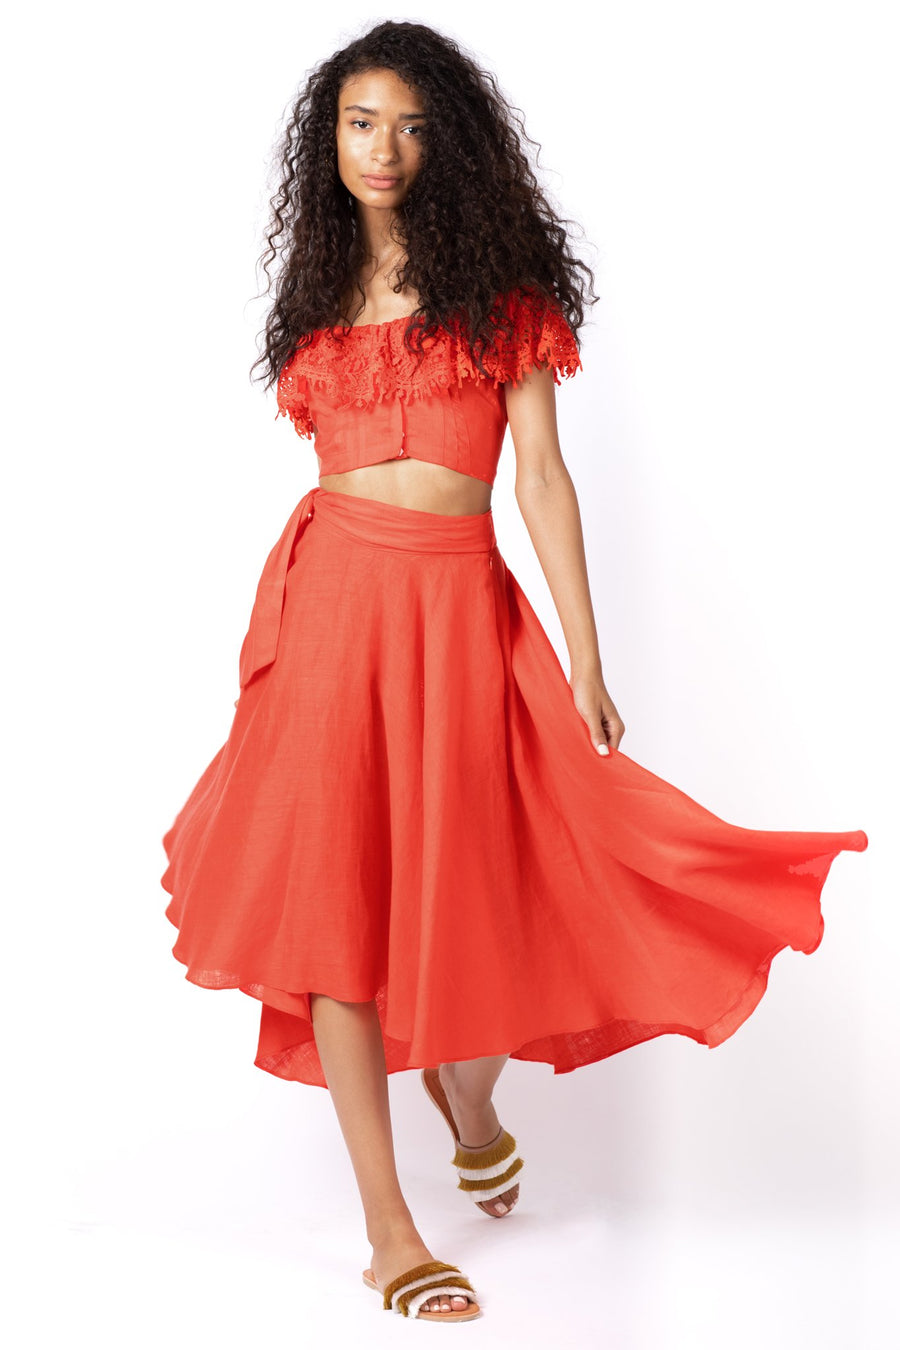 This is a photo of a woman wearing a bright red, lace trimmed, off the shoulder, linen top. Paired with a matching bright red, calf length, linen skirt.